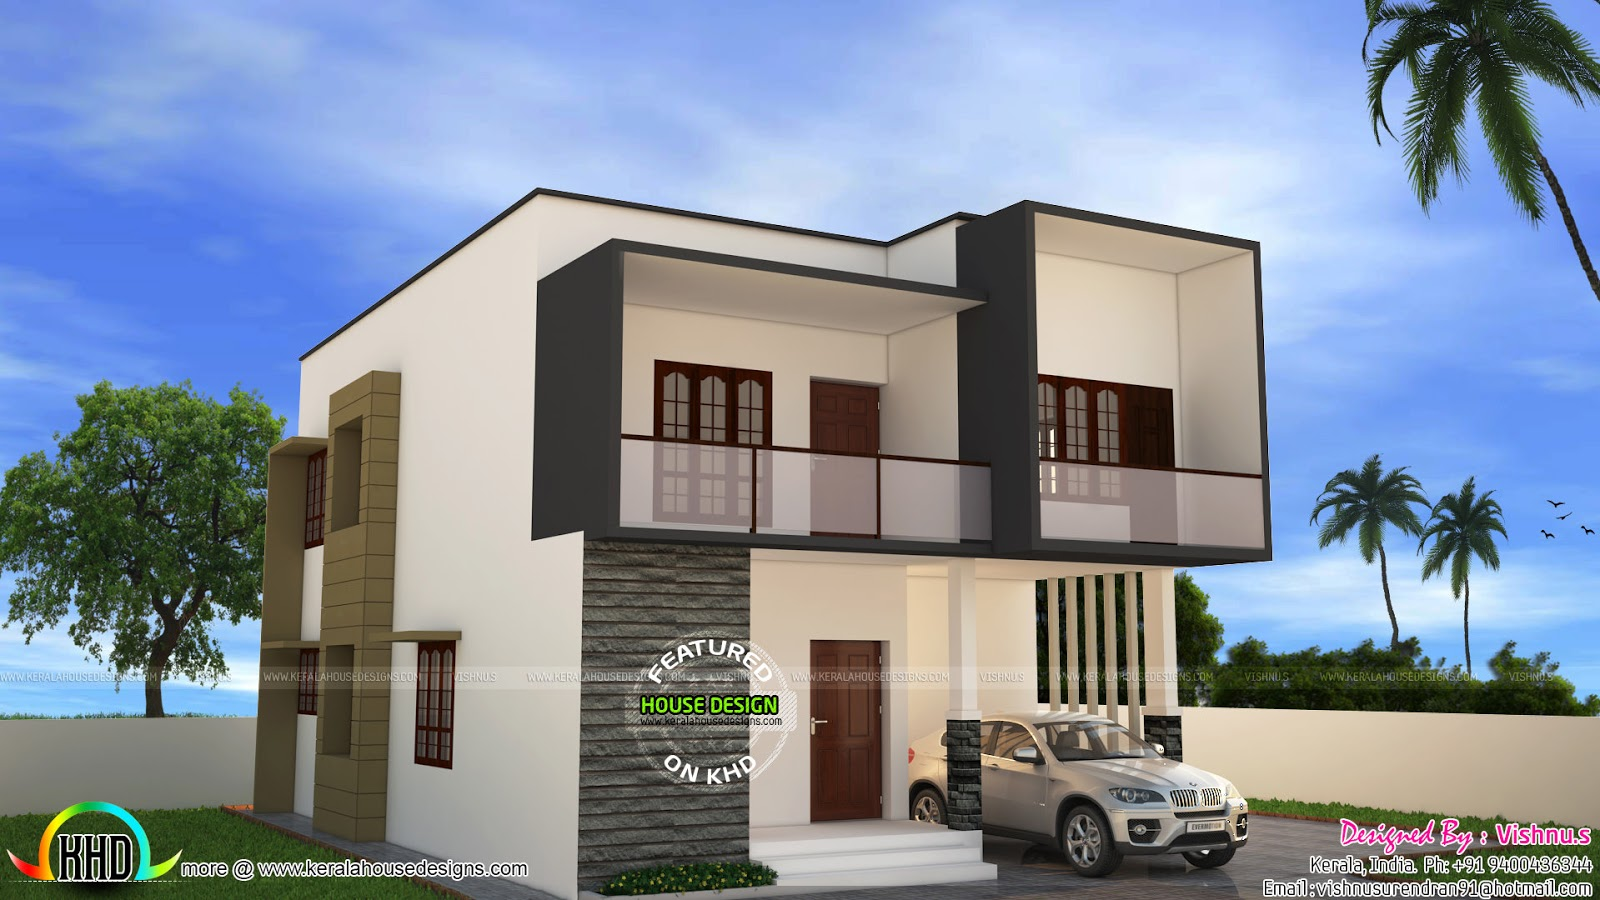 Homestiler Simple Modern House By Vishnu S Home Design Decor